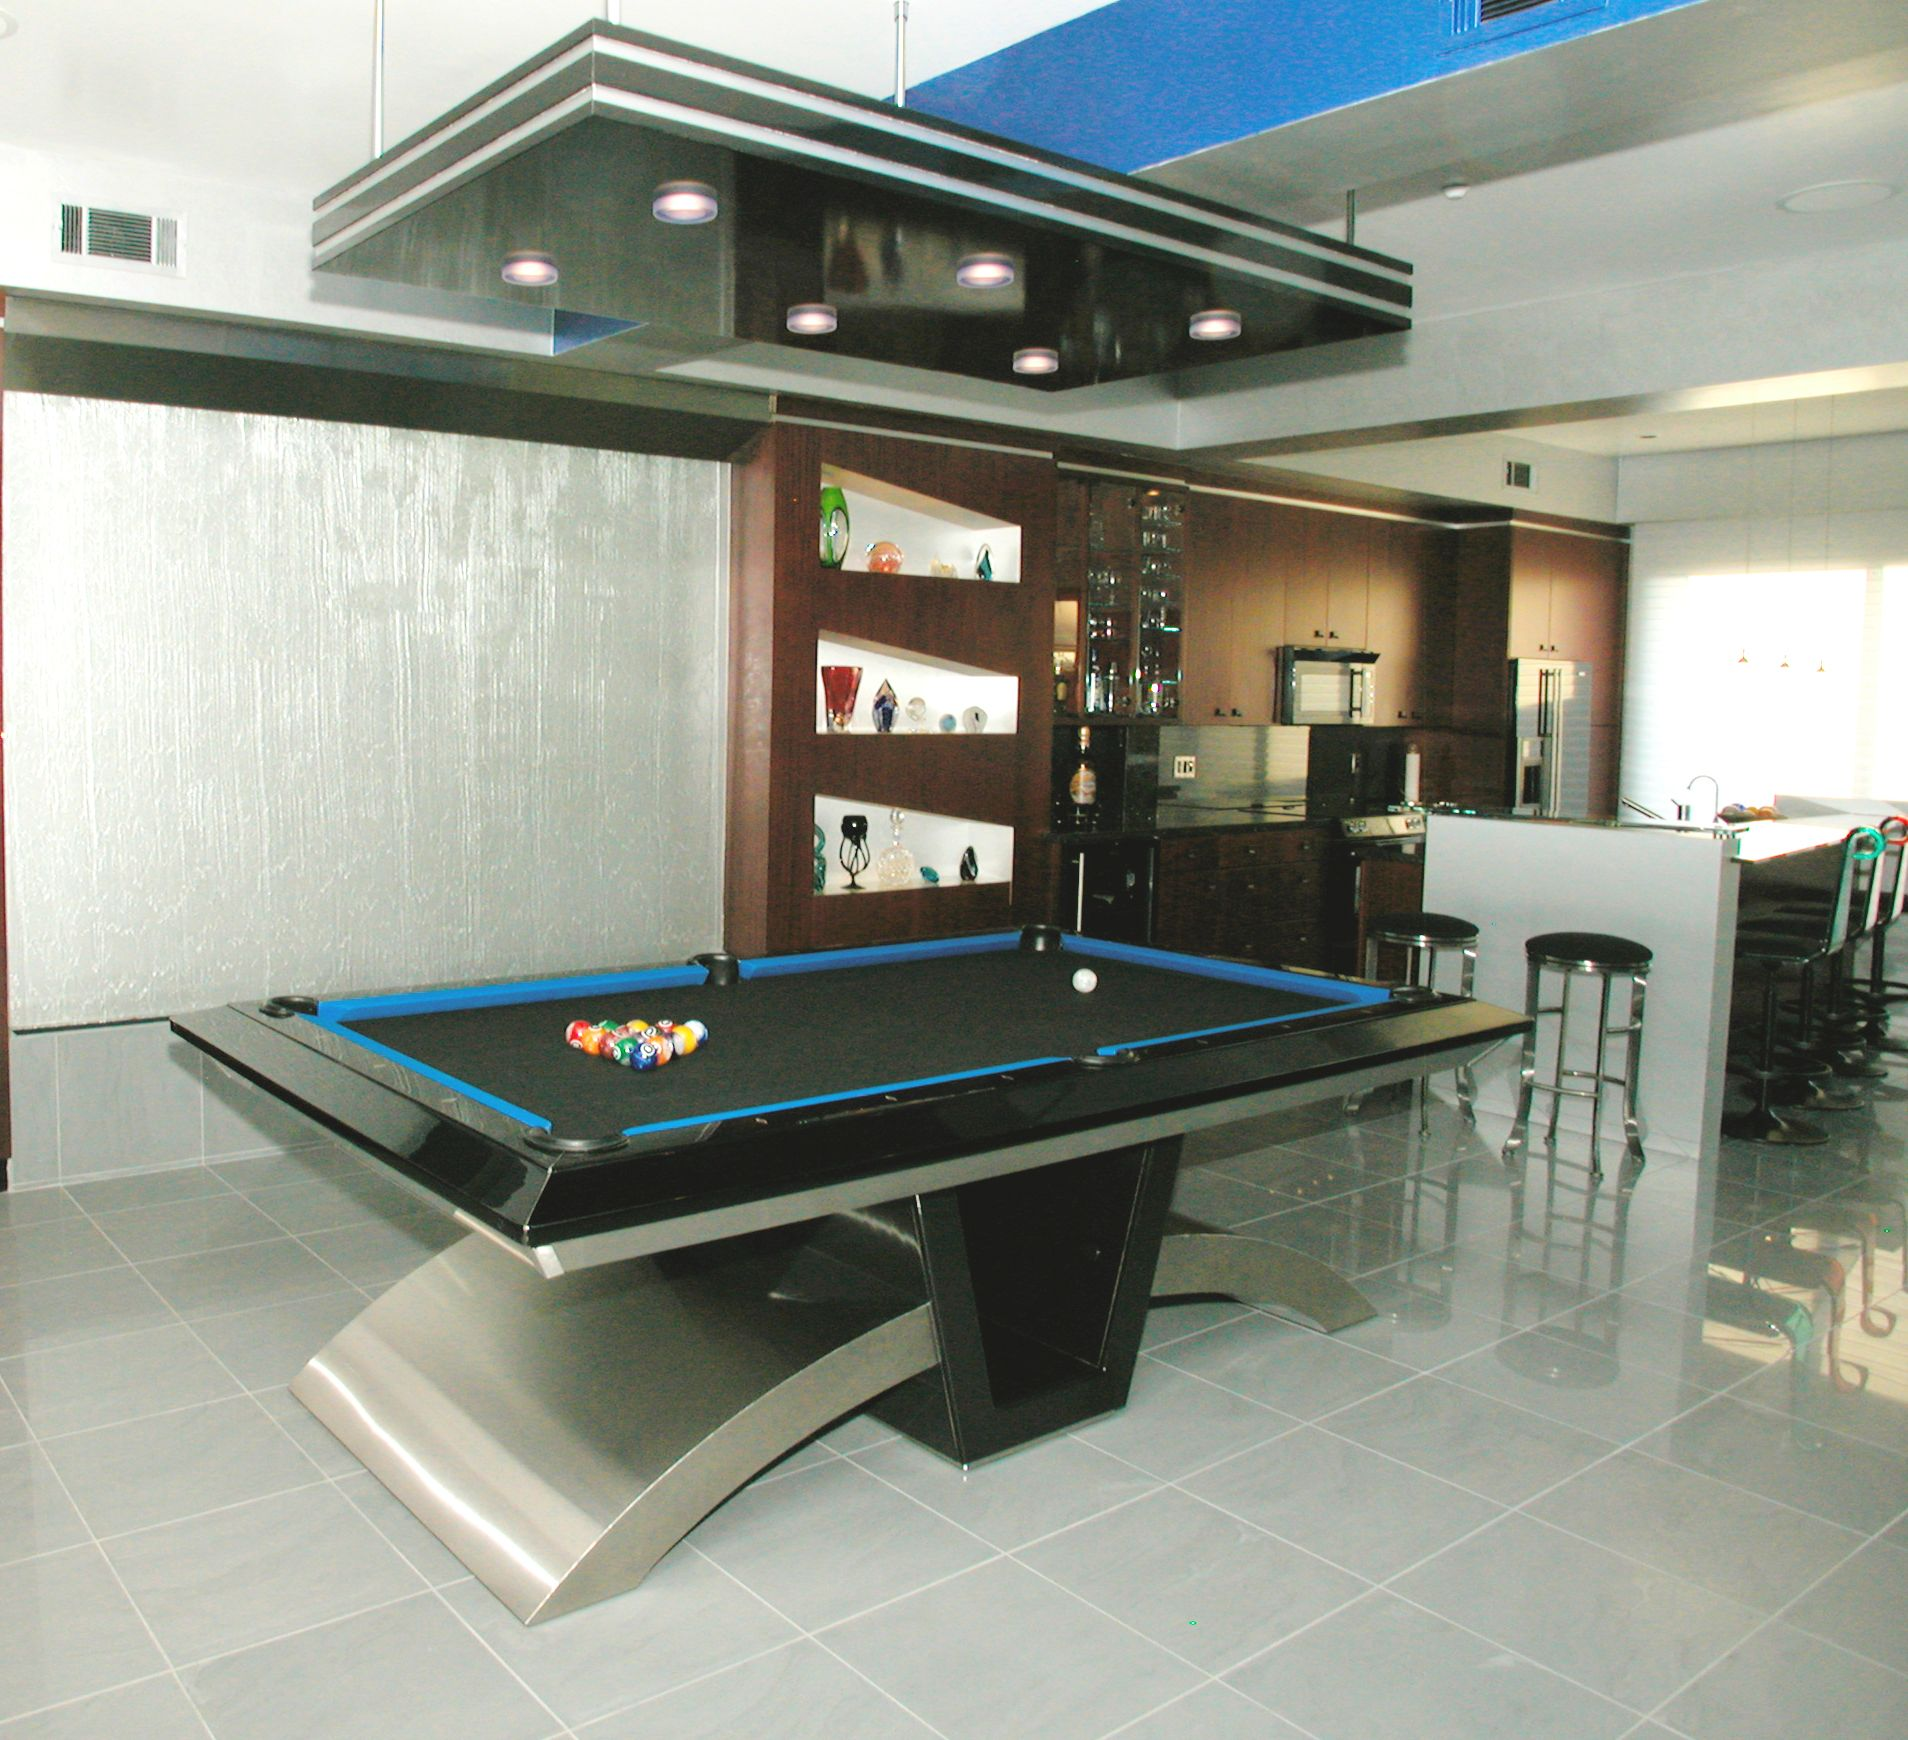 4e713ad39b Waterfall behind Stainless Steel Pool table designed by Nancyhugo ...